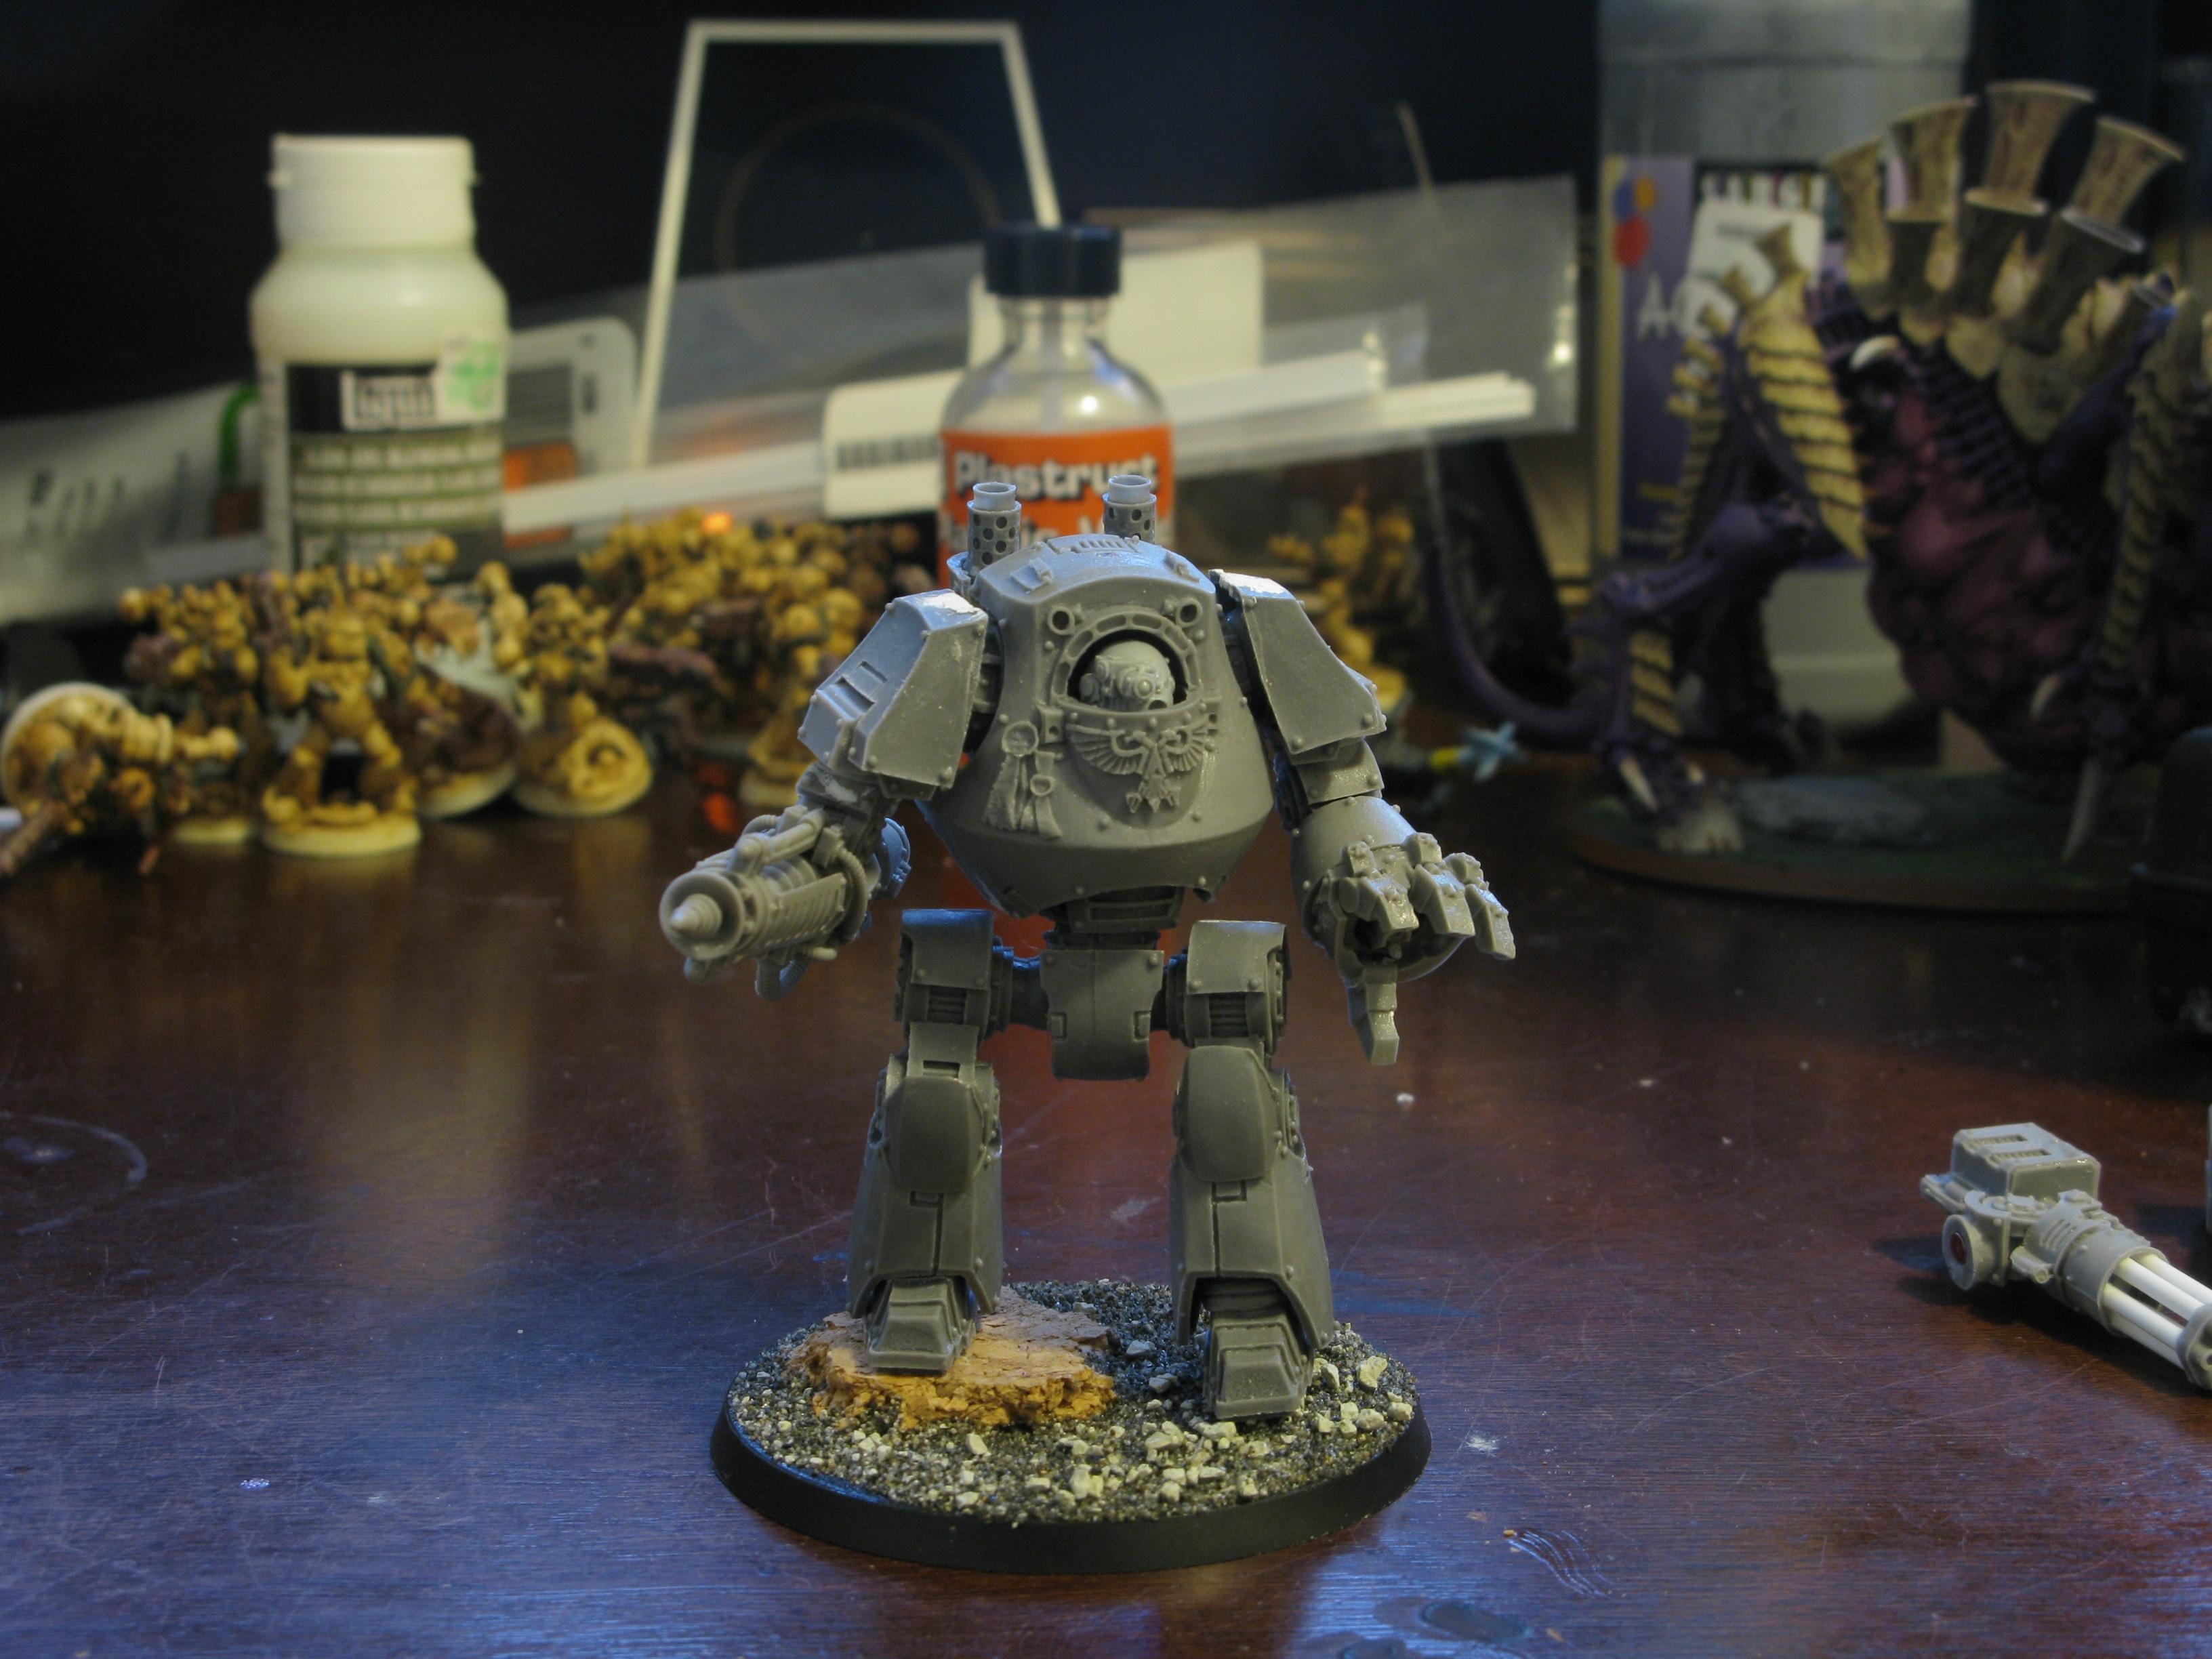 Contemptor, Magnet, Mortis, Work In Progress